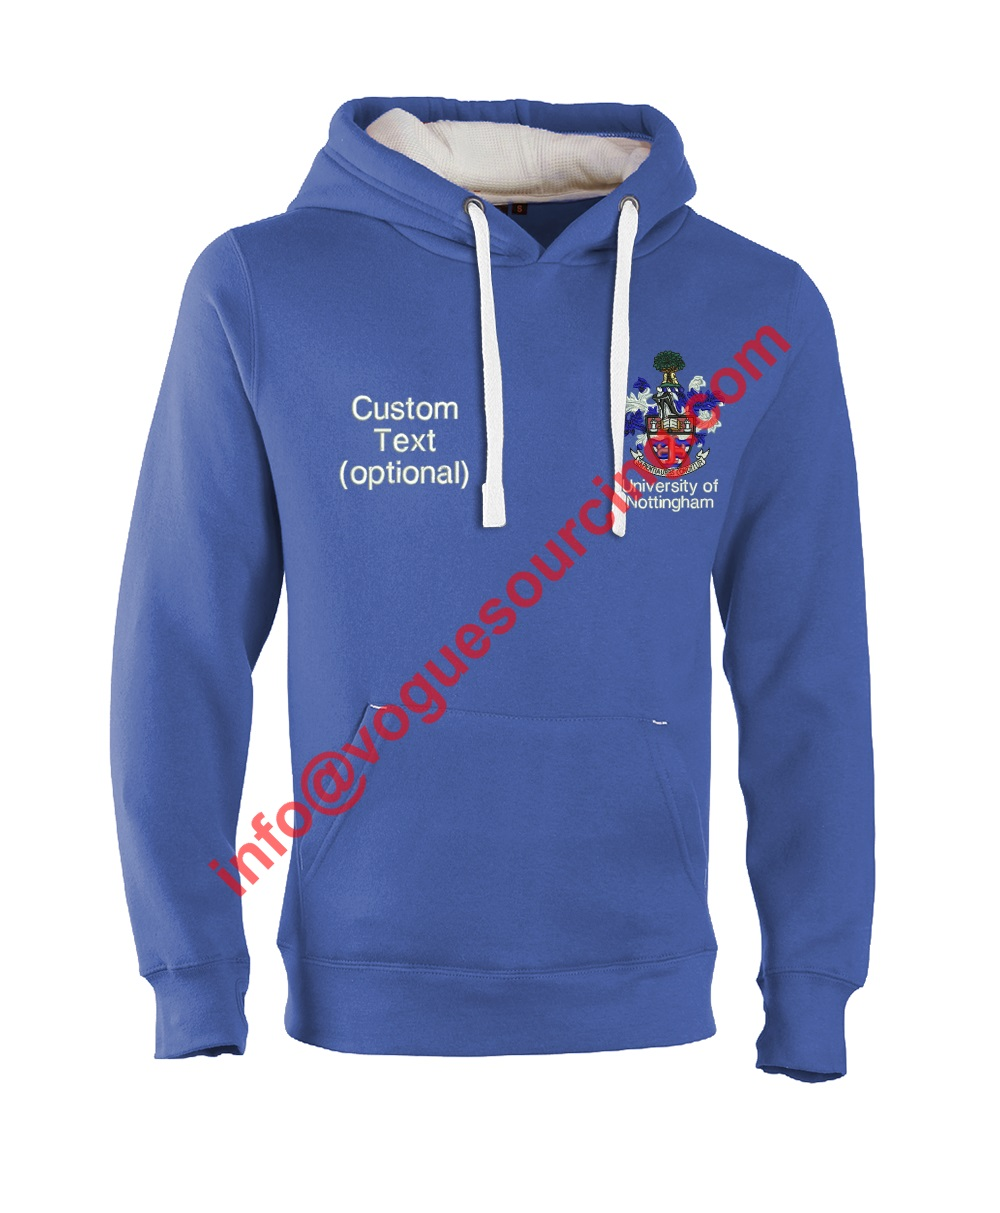 embroidered-hoodies-manufacturers-suppliers-exporters-wholesalers-voguesourcing-tirupur-india-uk-europe-usa-australia-uae-canada